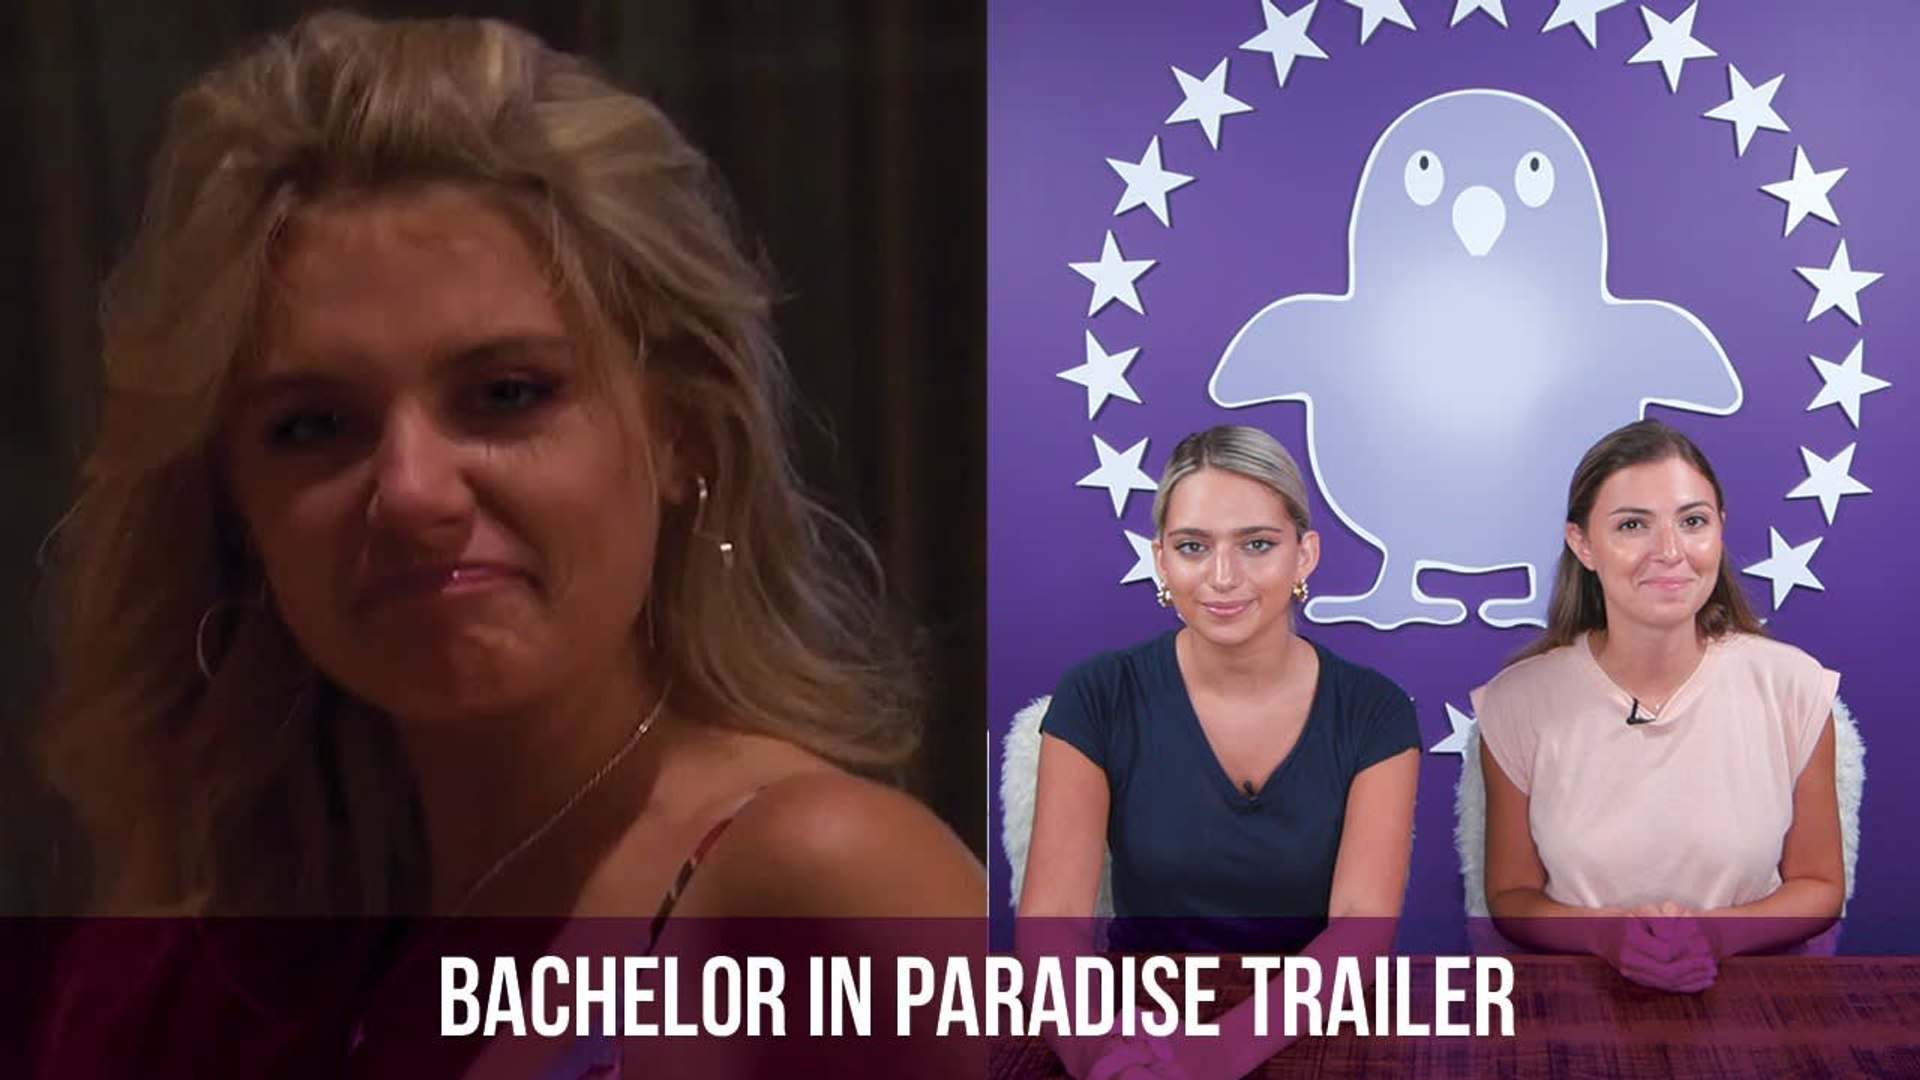 Bachelor In Paradise Trailer Has Been Released And It's Going To Be A Wild Season